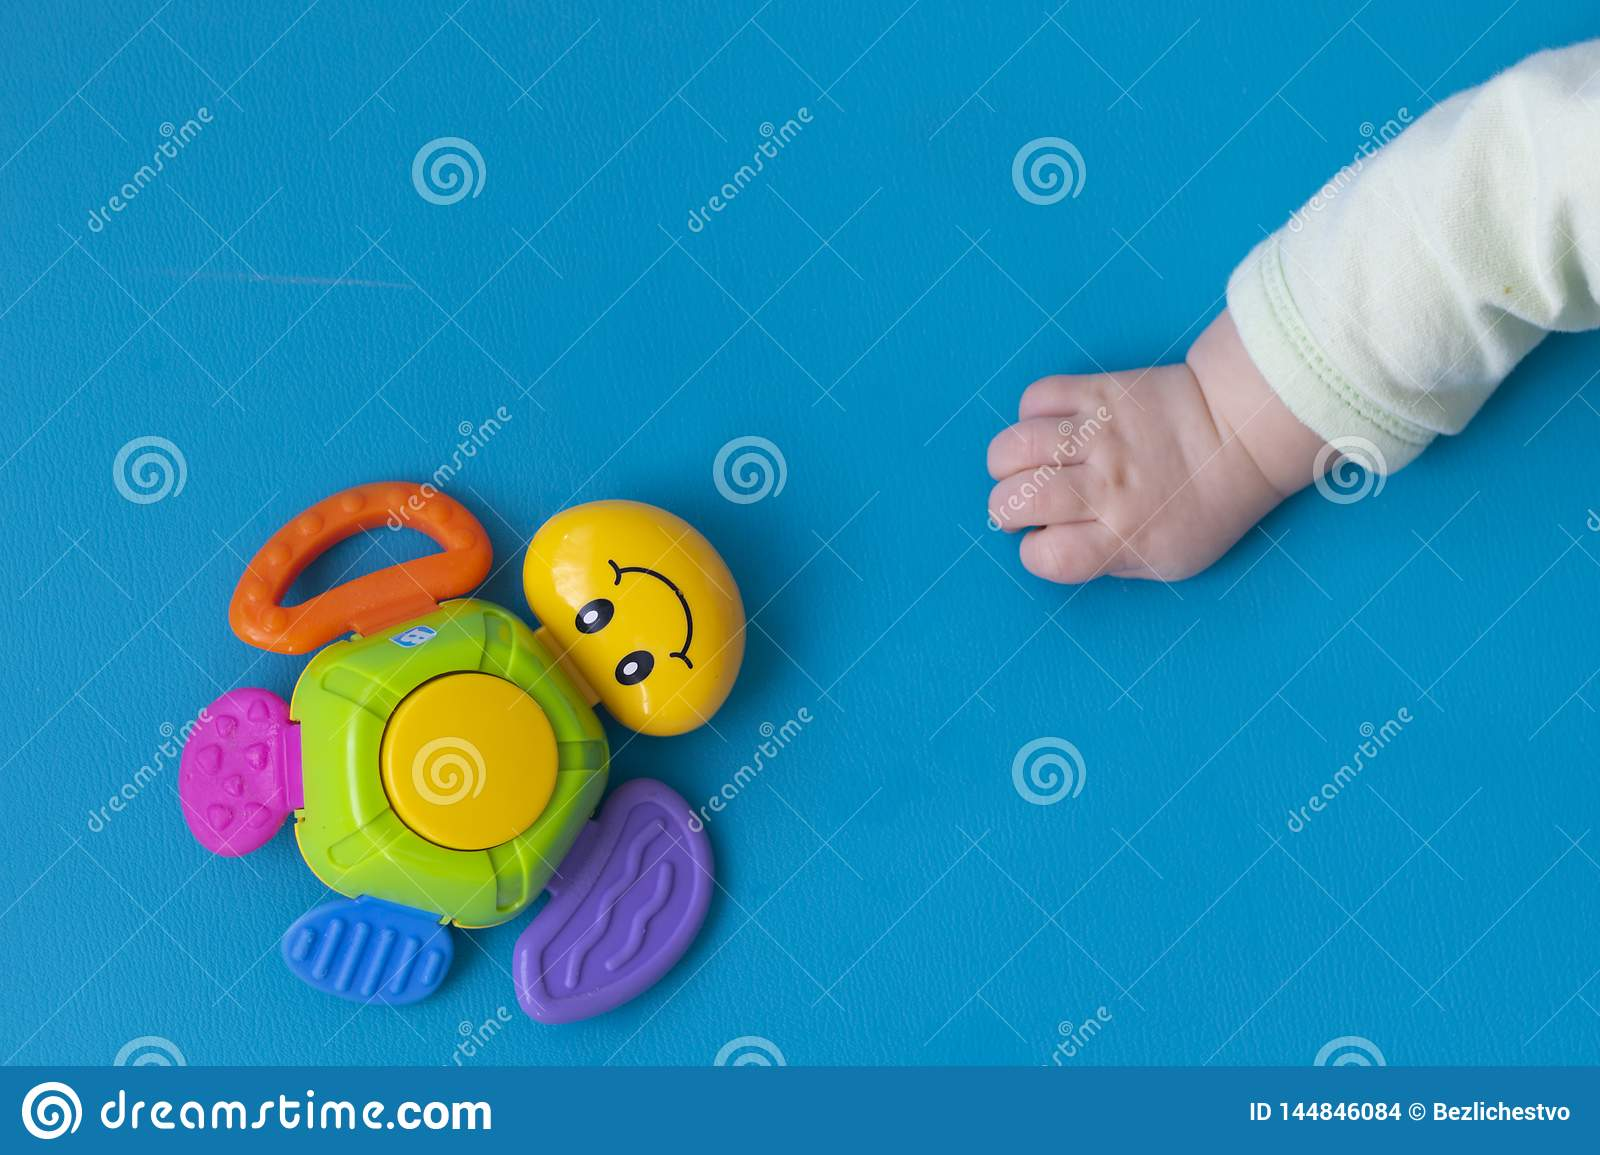 The Toddler New Born hand stretches to the right to the toy of a multi-colored turtle with a smile on a blue background. Close-